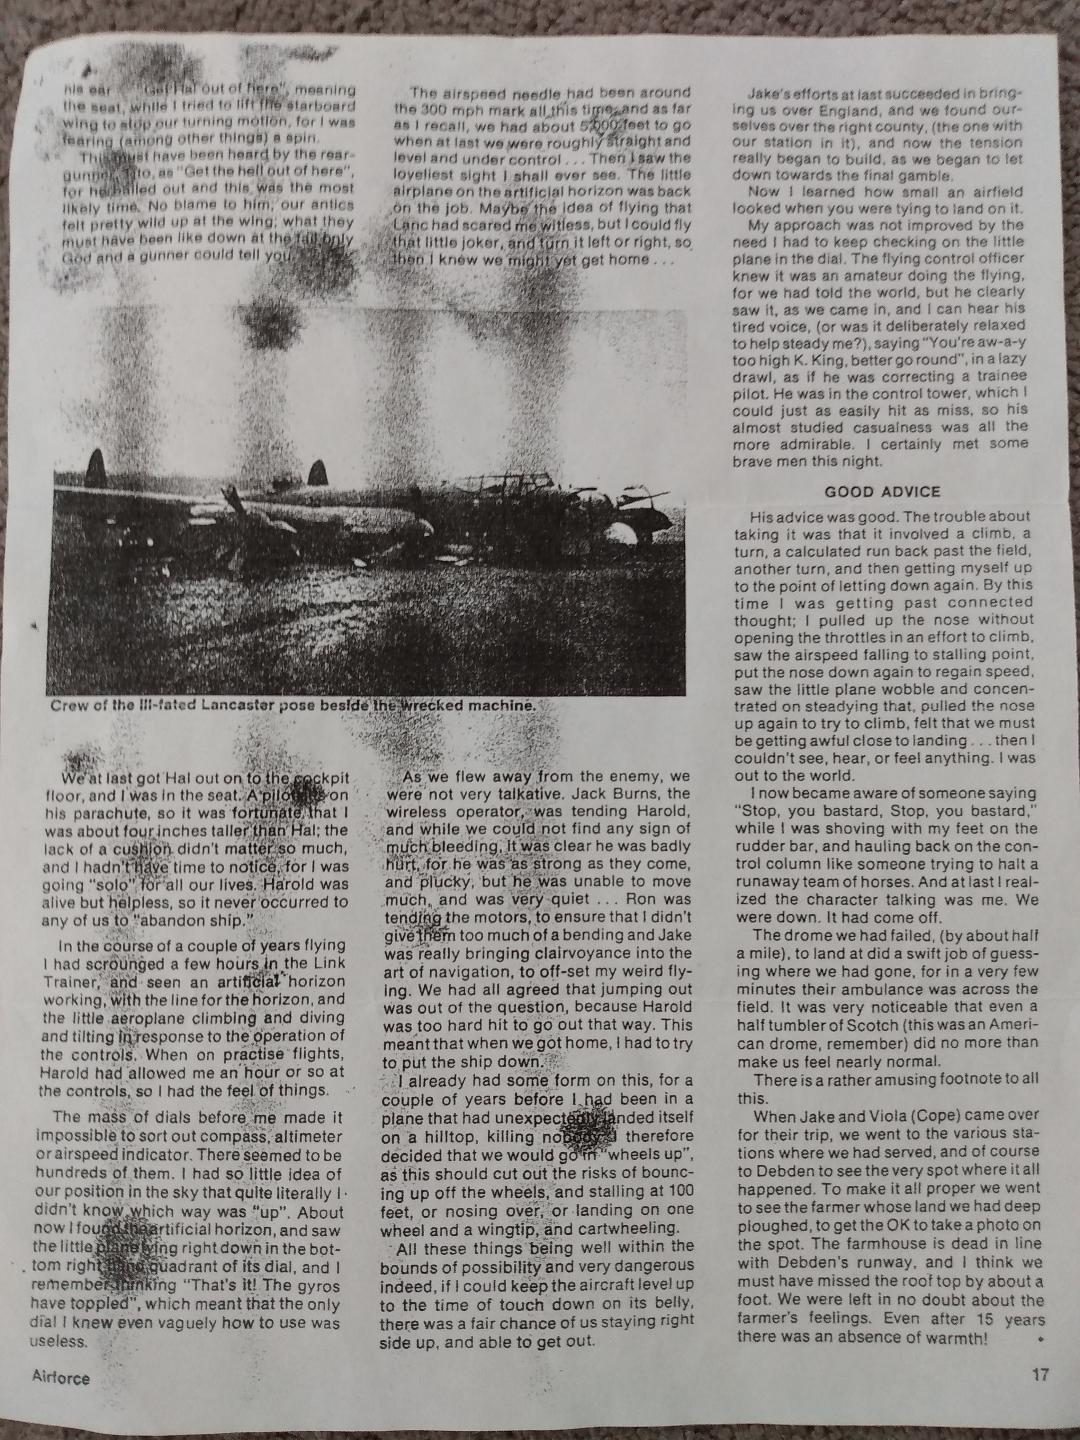 """Newspaper clipping– Part 2 of an article from """"Airforce"""", describing the crash landing of Harold Hannah's plane, PB413."""